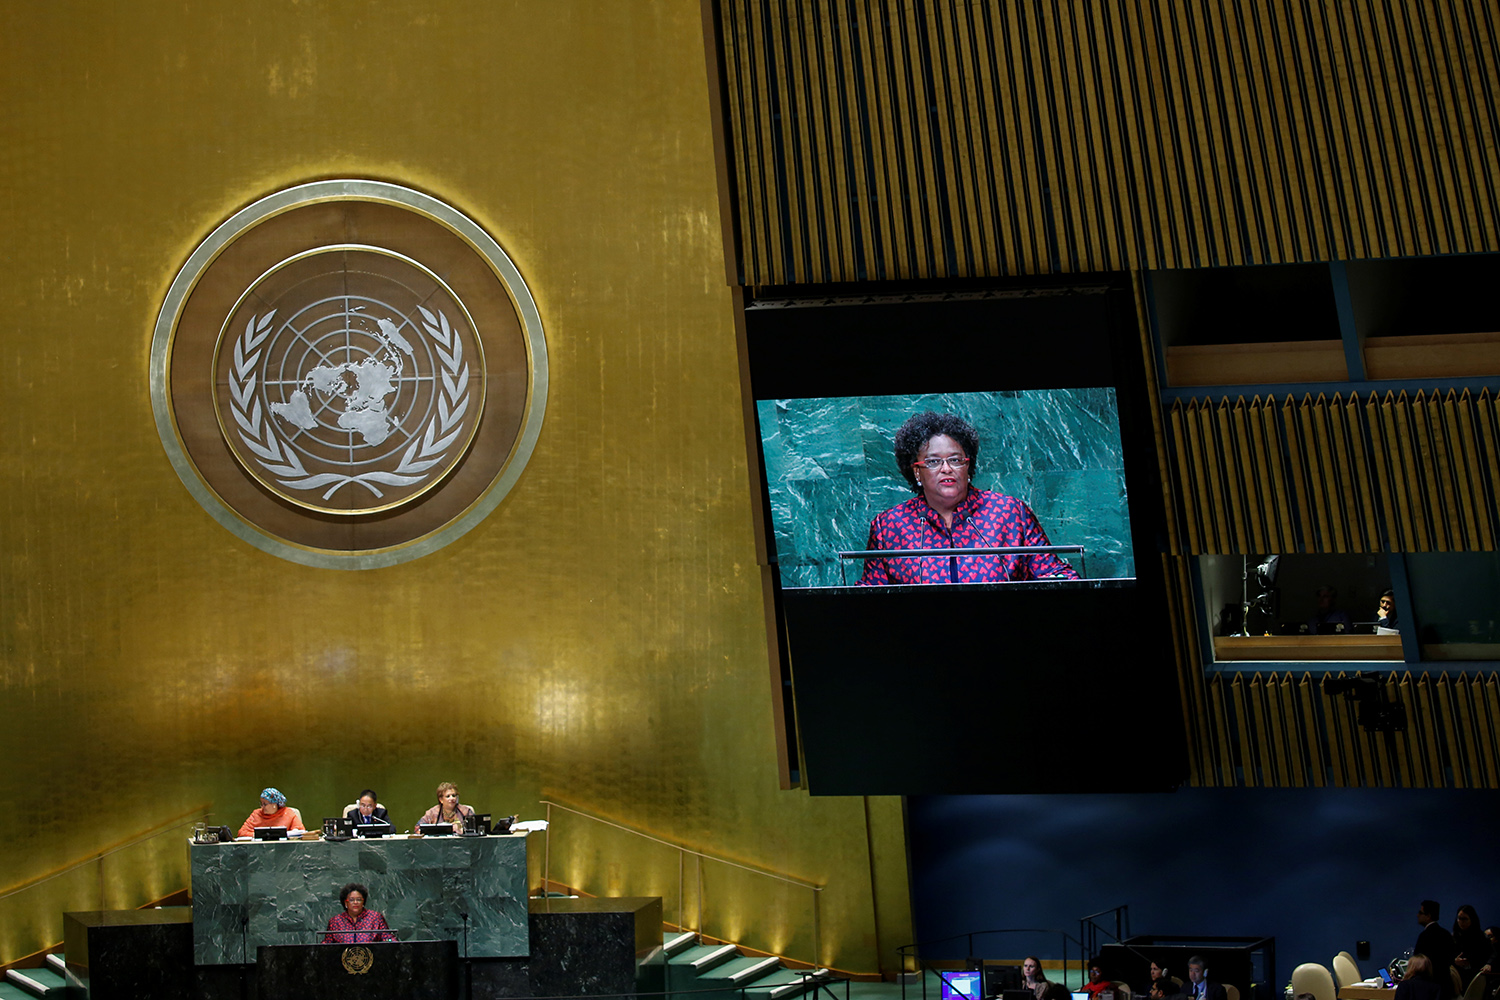 Barbados Prime Minister Mia Mottley addresses the 73rd session of the United Nations General Assembly at the U.N. headquarters in New York on Sept. 28, 2018..